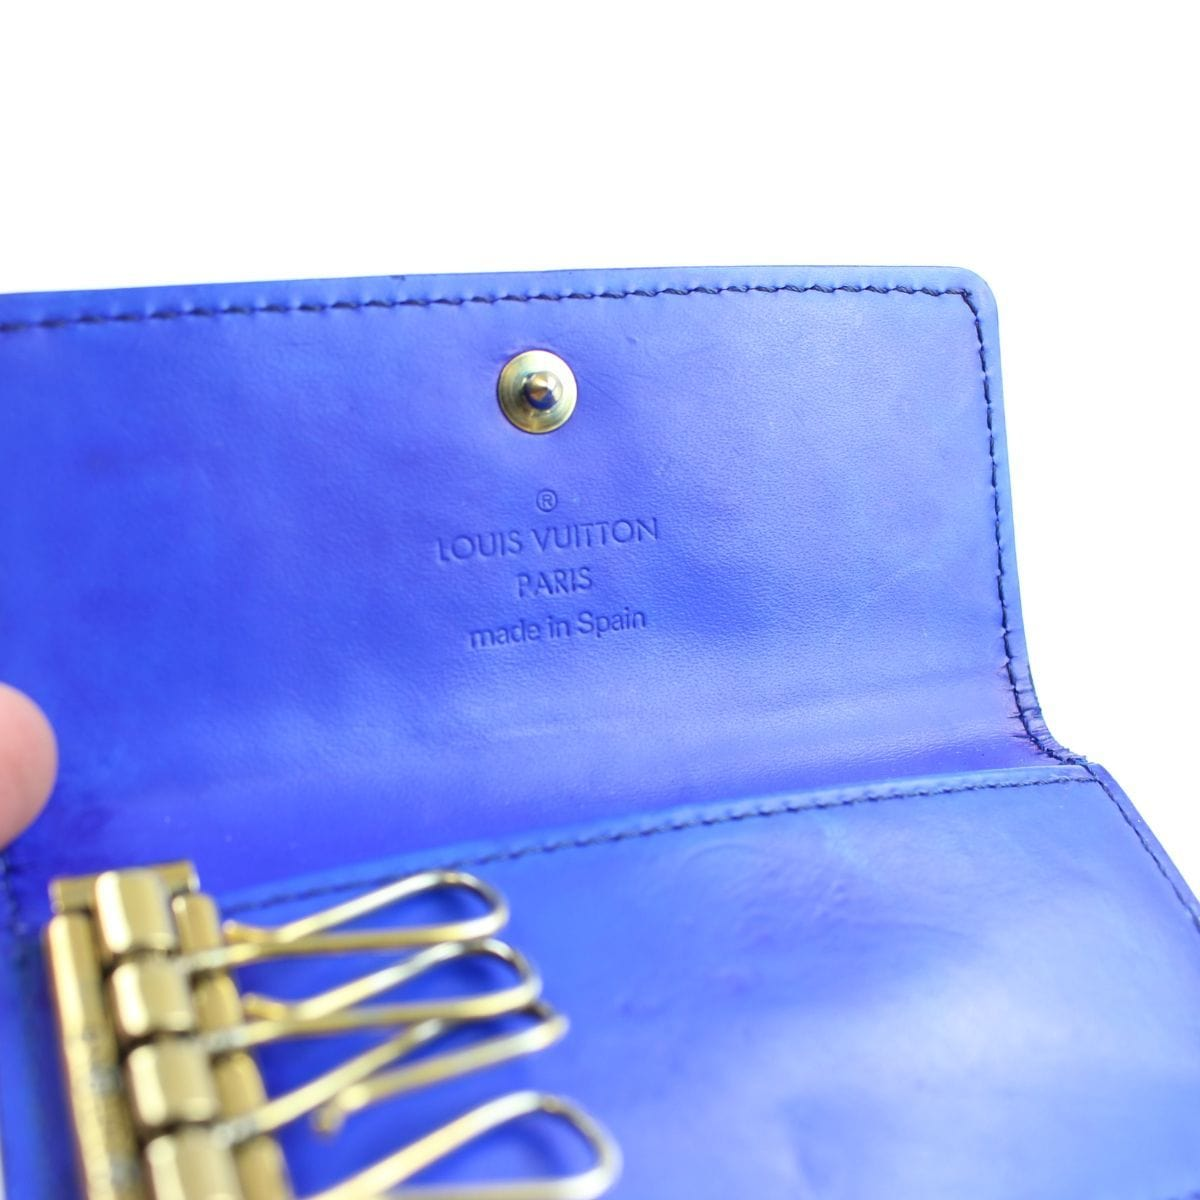 louis vuitton blue monogram vernis leather key holder - SaruGeneral